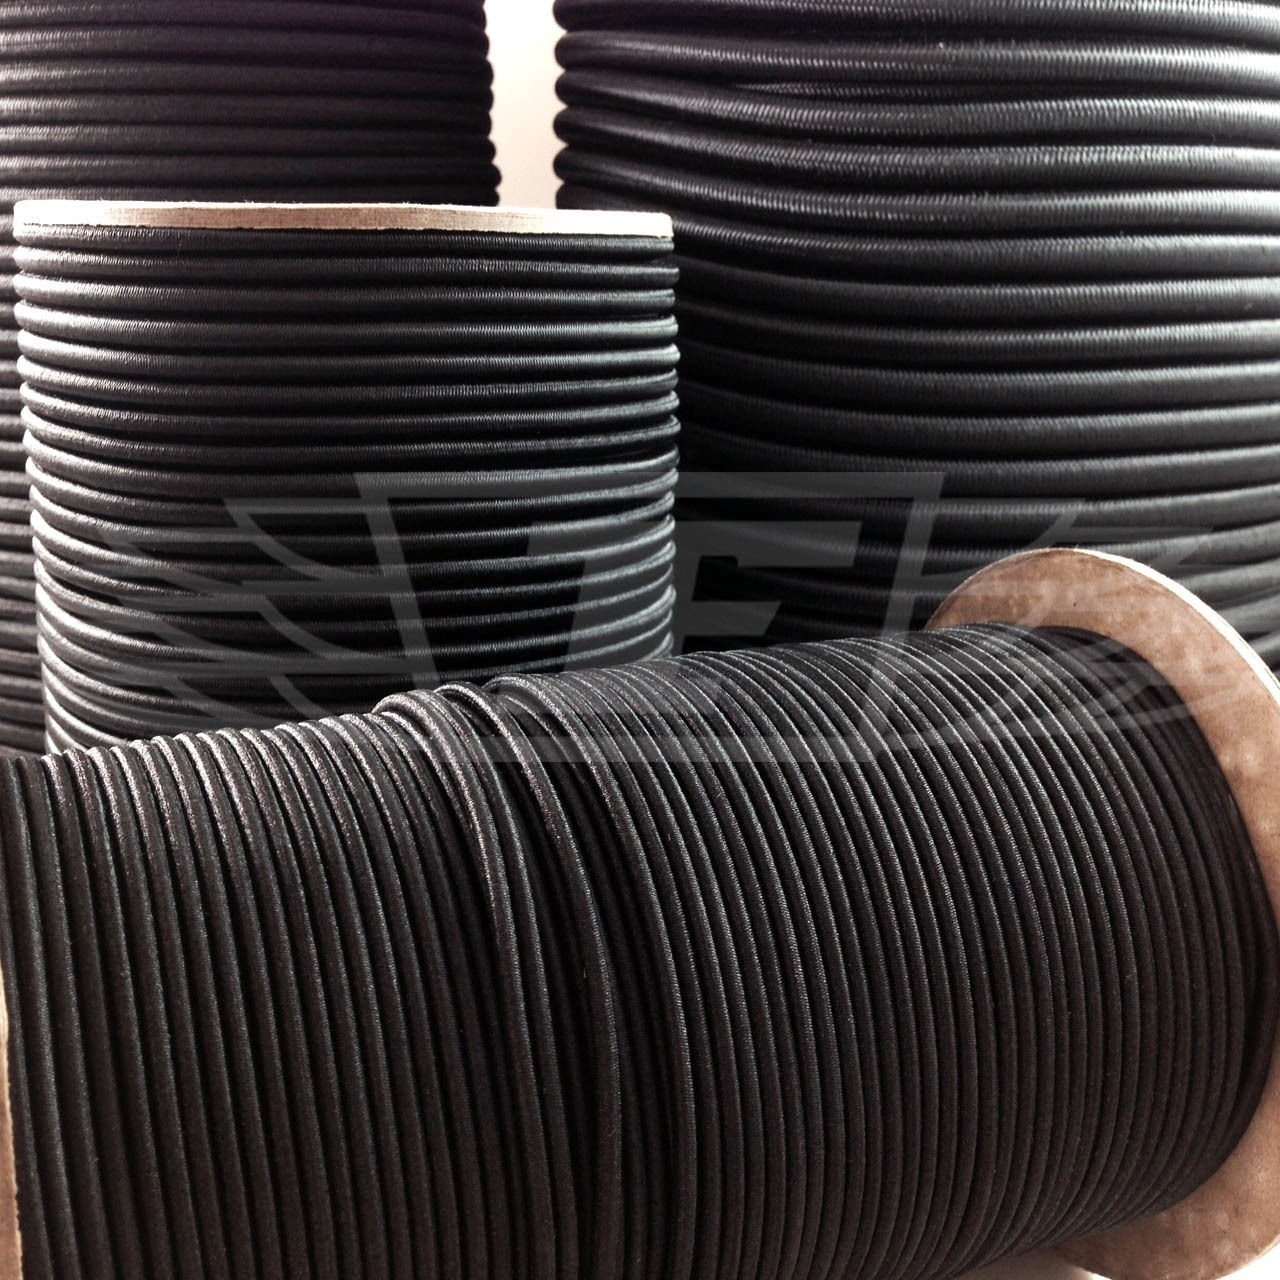 5mm x 10 METERS, BLACK STRONG ELASTIC BUNGEE ROPE SHOCK CORD TIE DOWN FREE POST Falcon Workshop Supplies Ltd